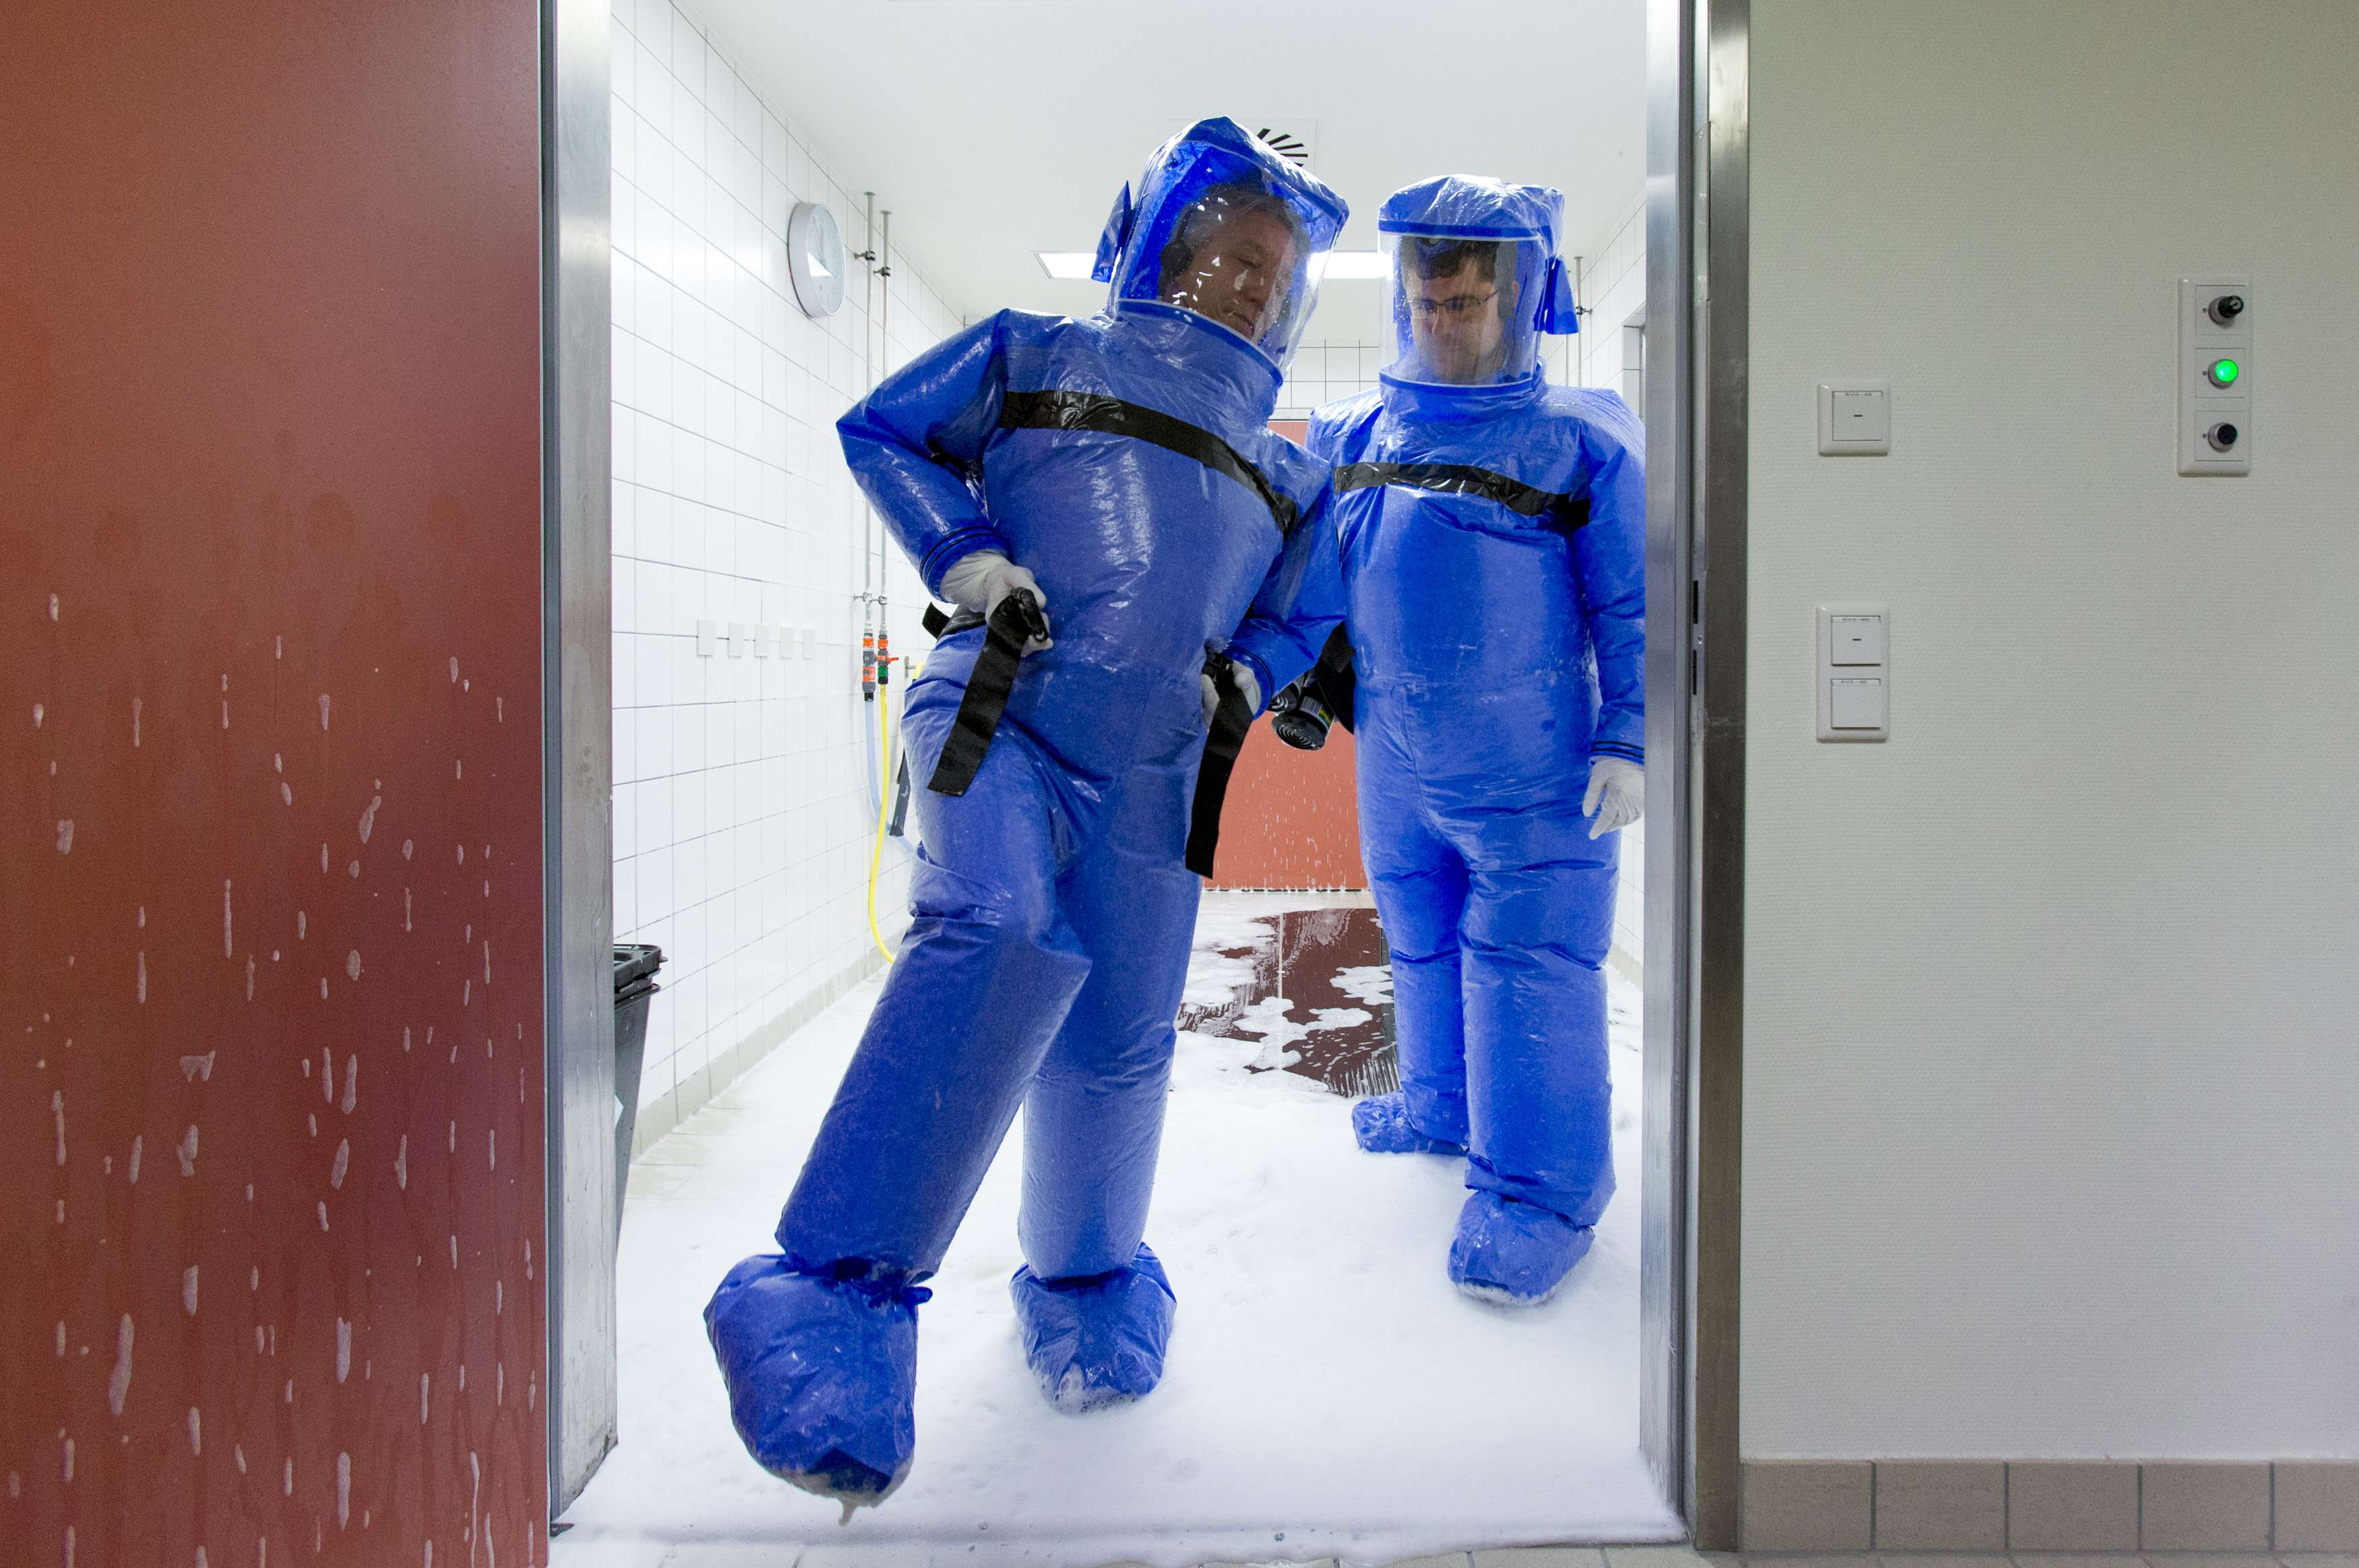 Physicians step out of disinfection chamber after cleaning their protective suits at quarantine station for patients with infectious diseases in Berlin